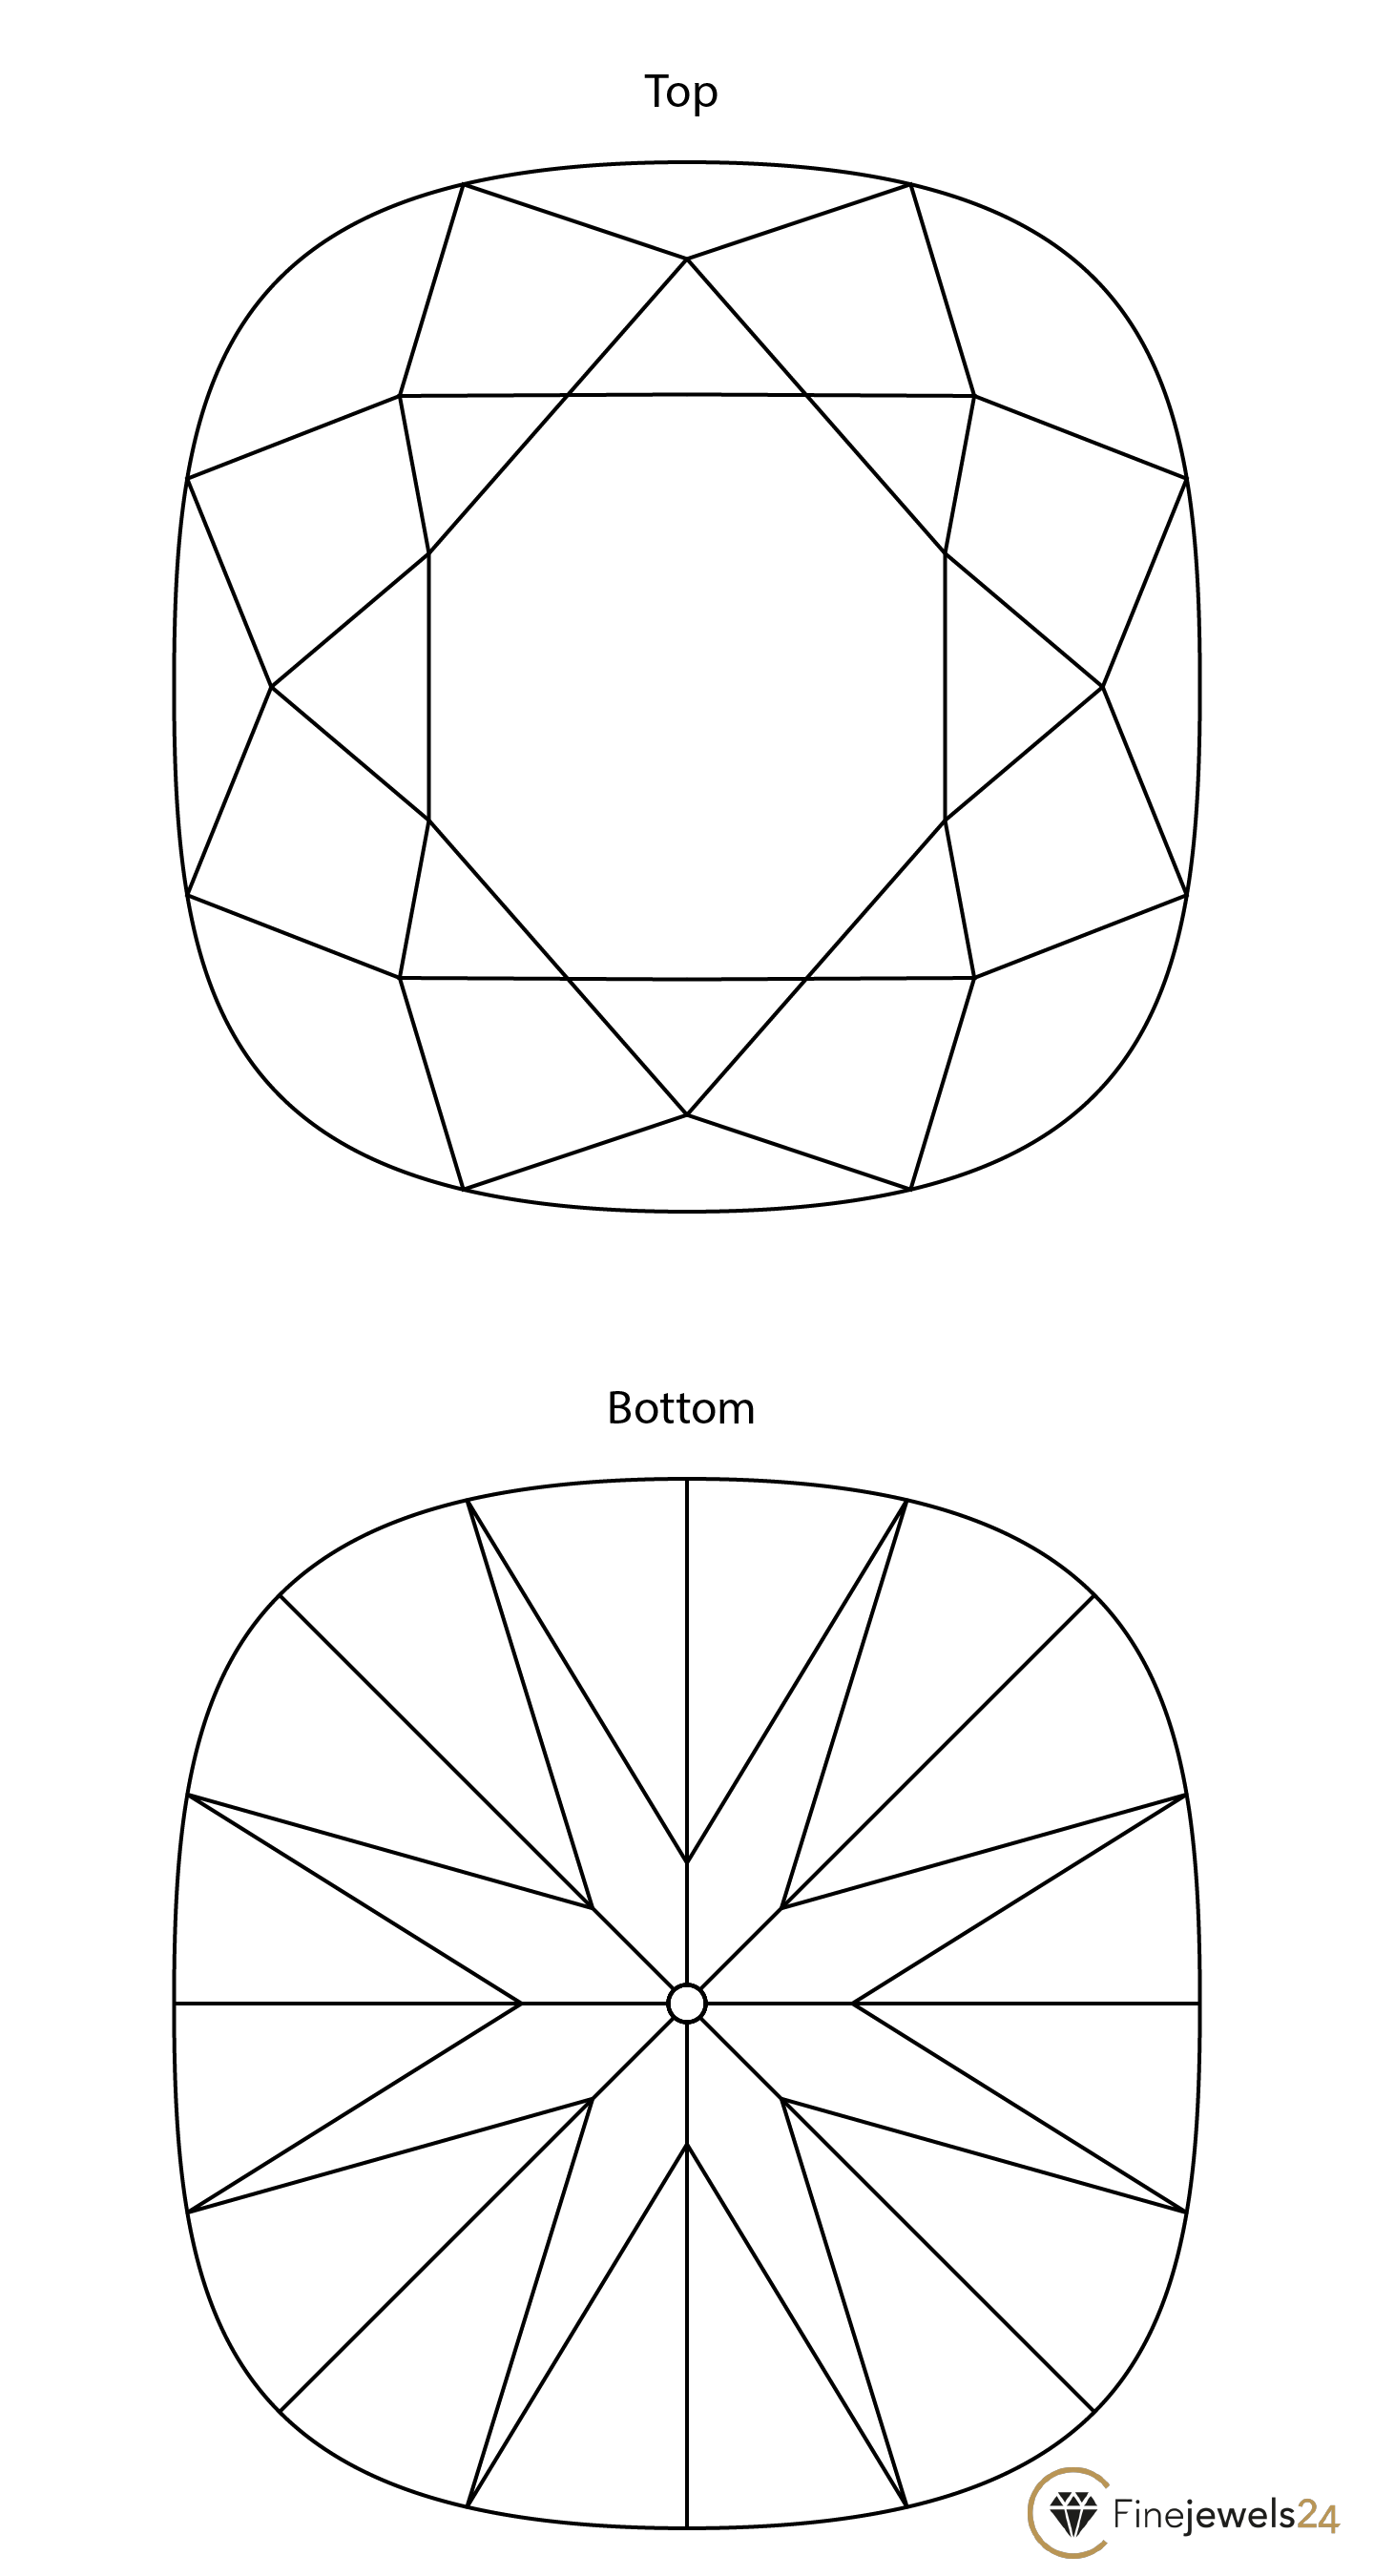 Cushion cut sketches of top and bottom